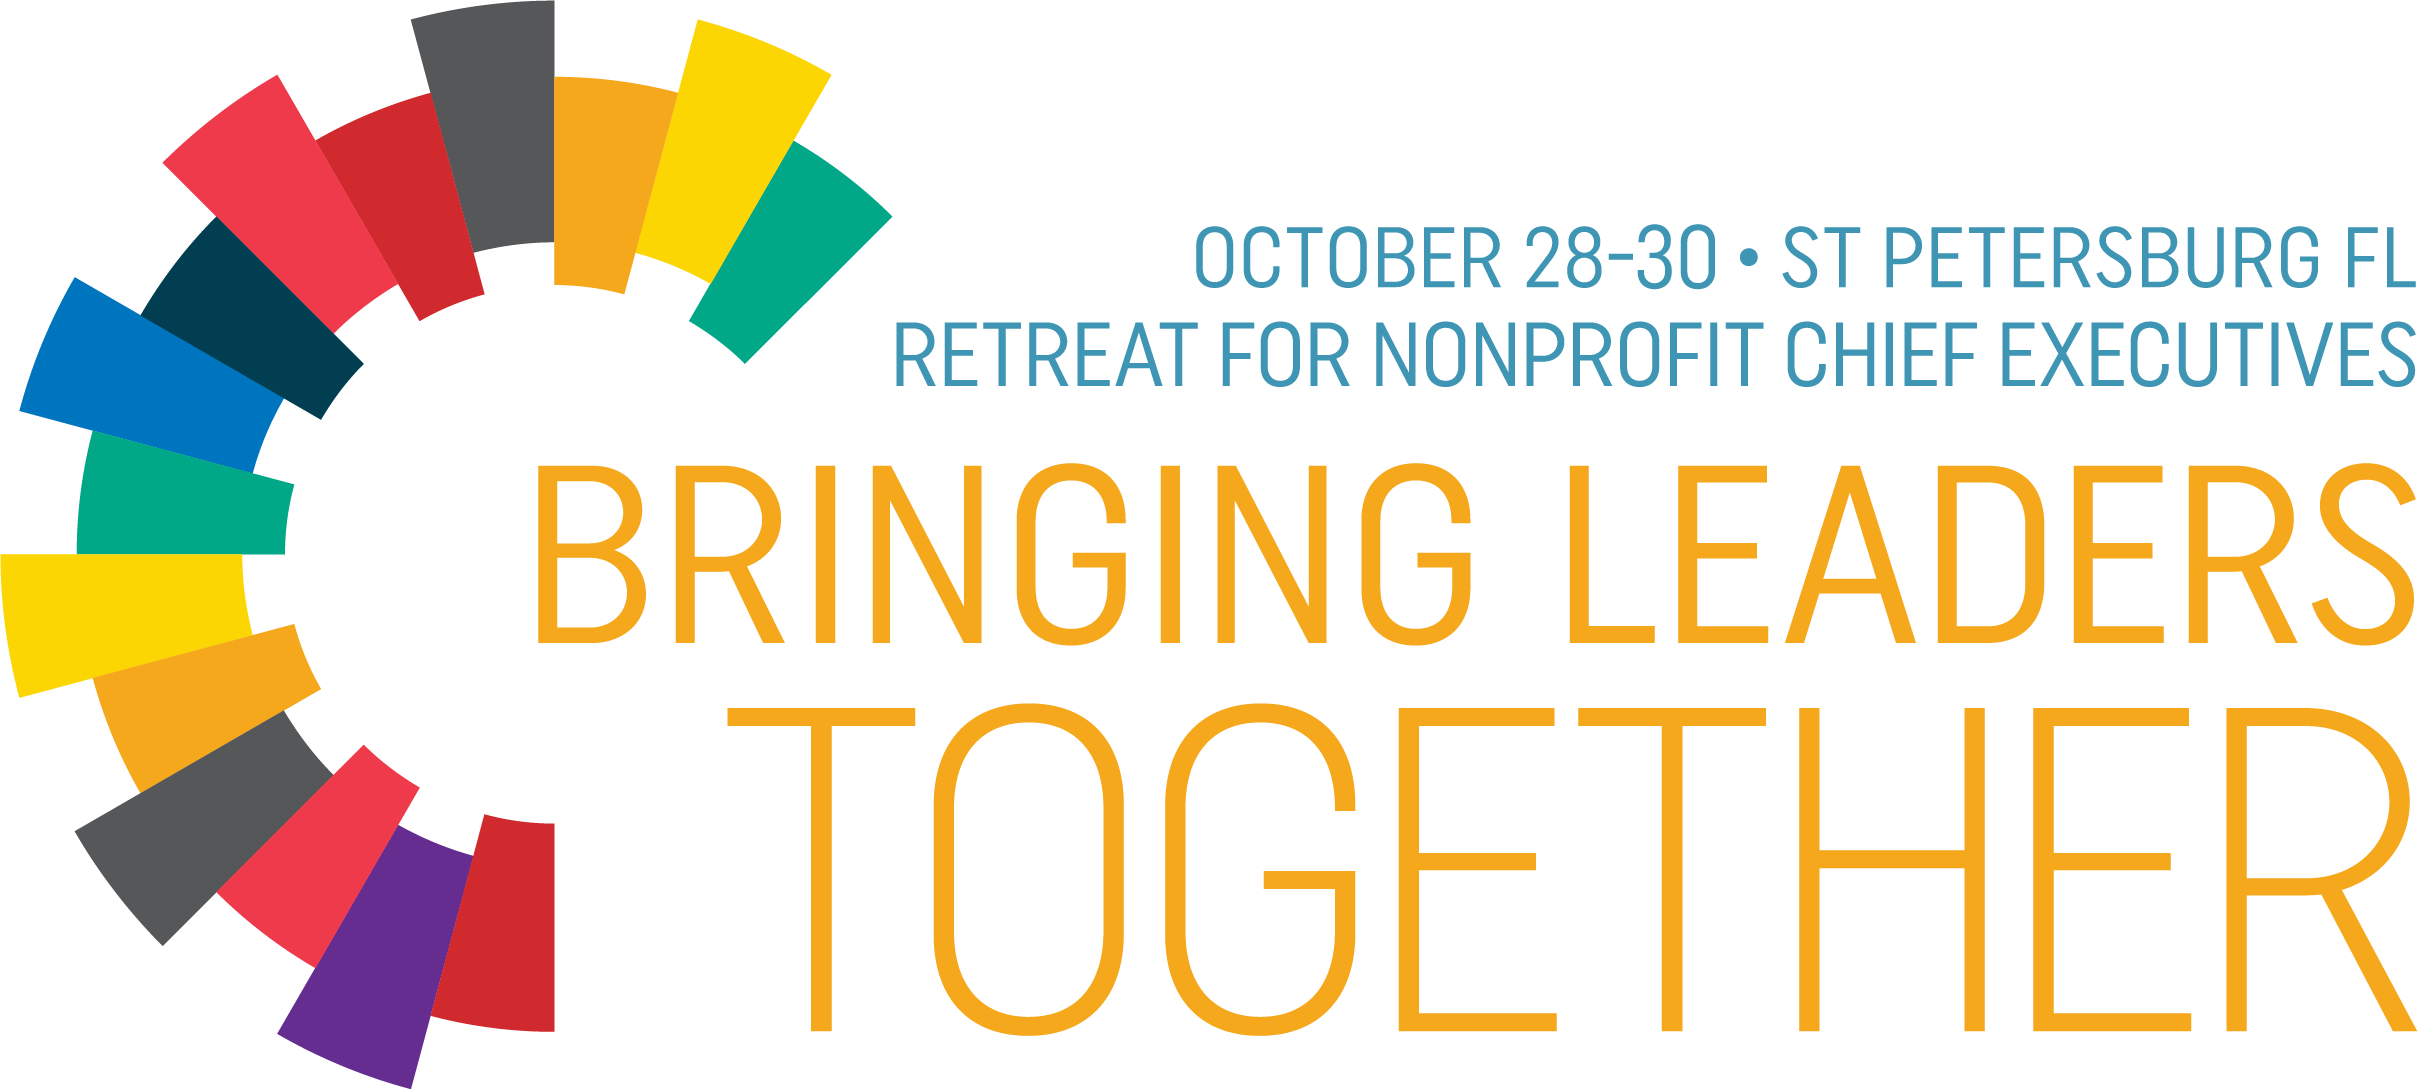 2019 Executive Retreat Logo | Bringing Leaders Together | October 28-30 | St. Petersburg, Florida